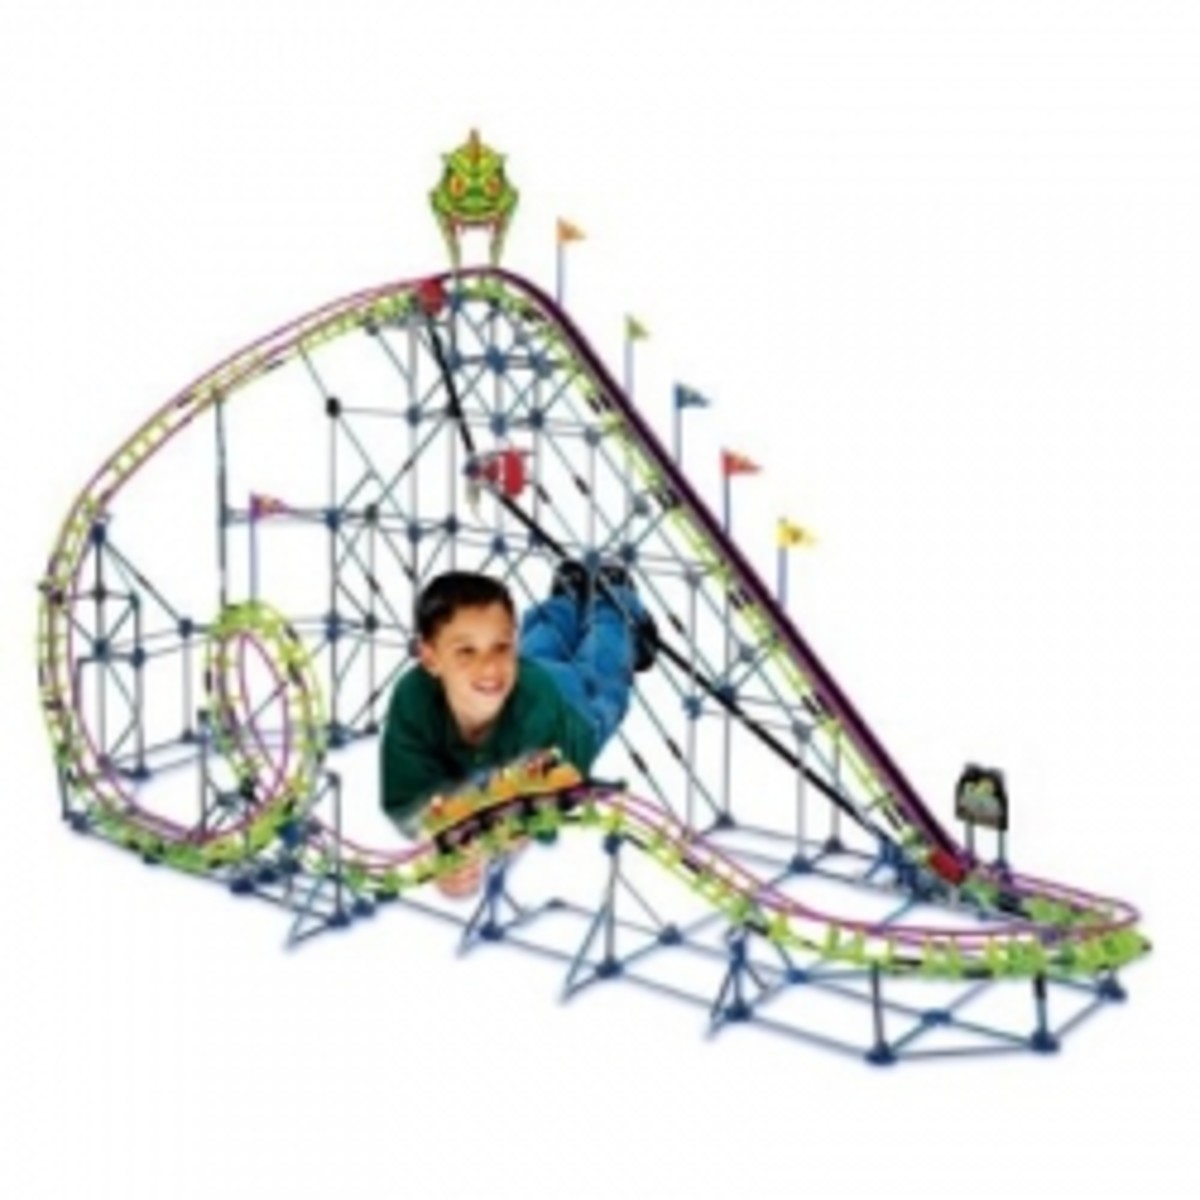 K'nex Roller Coasters - 14 Models Featured